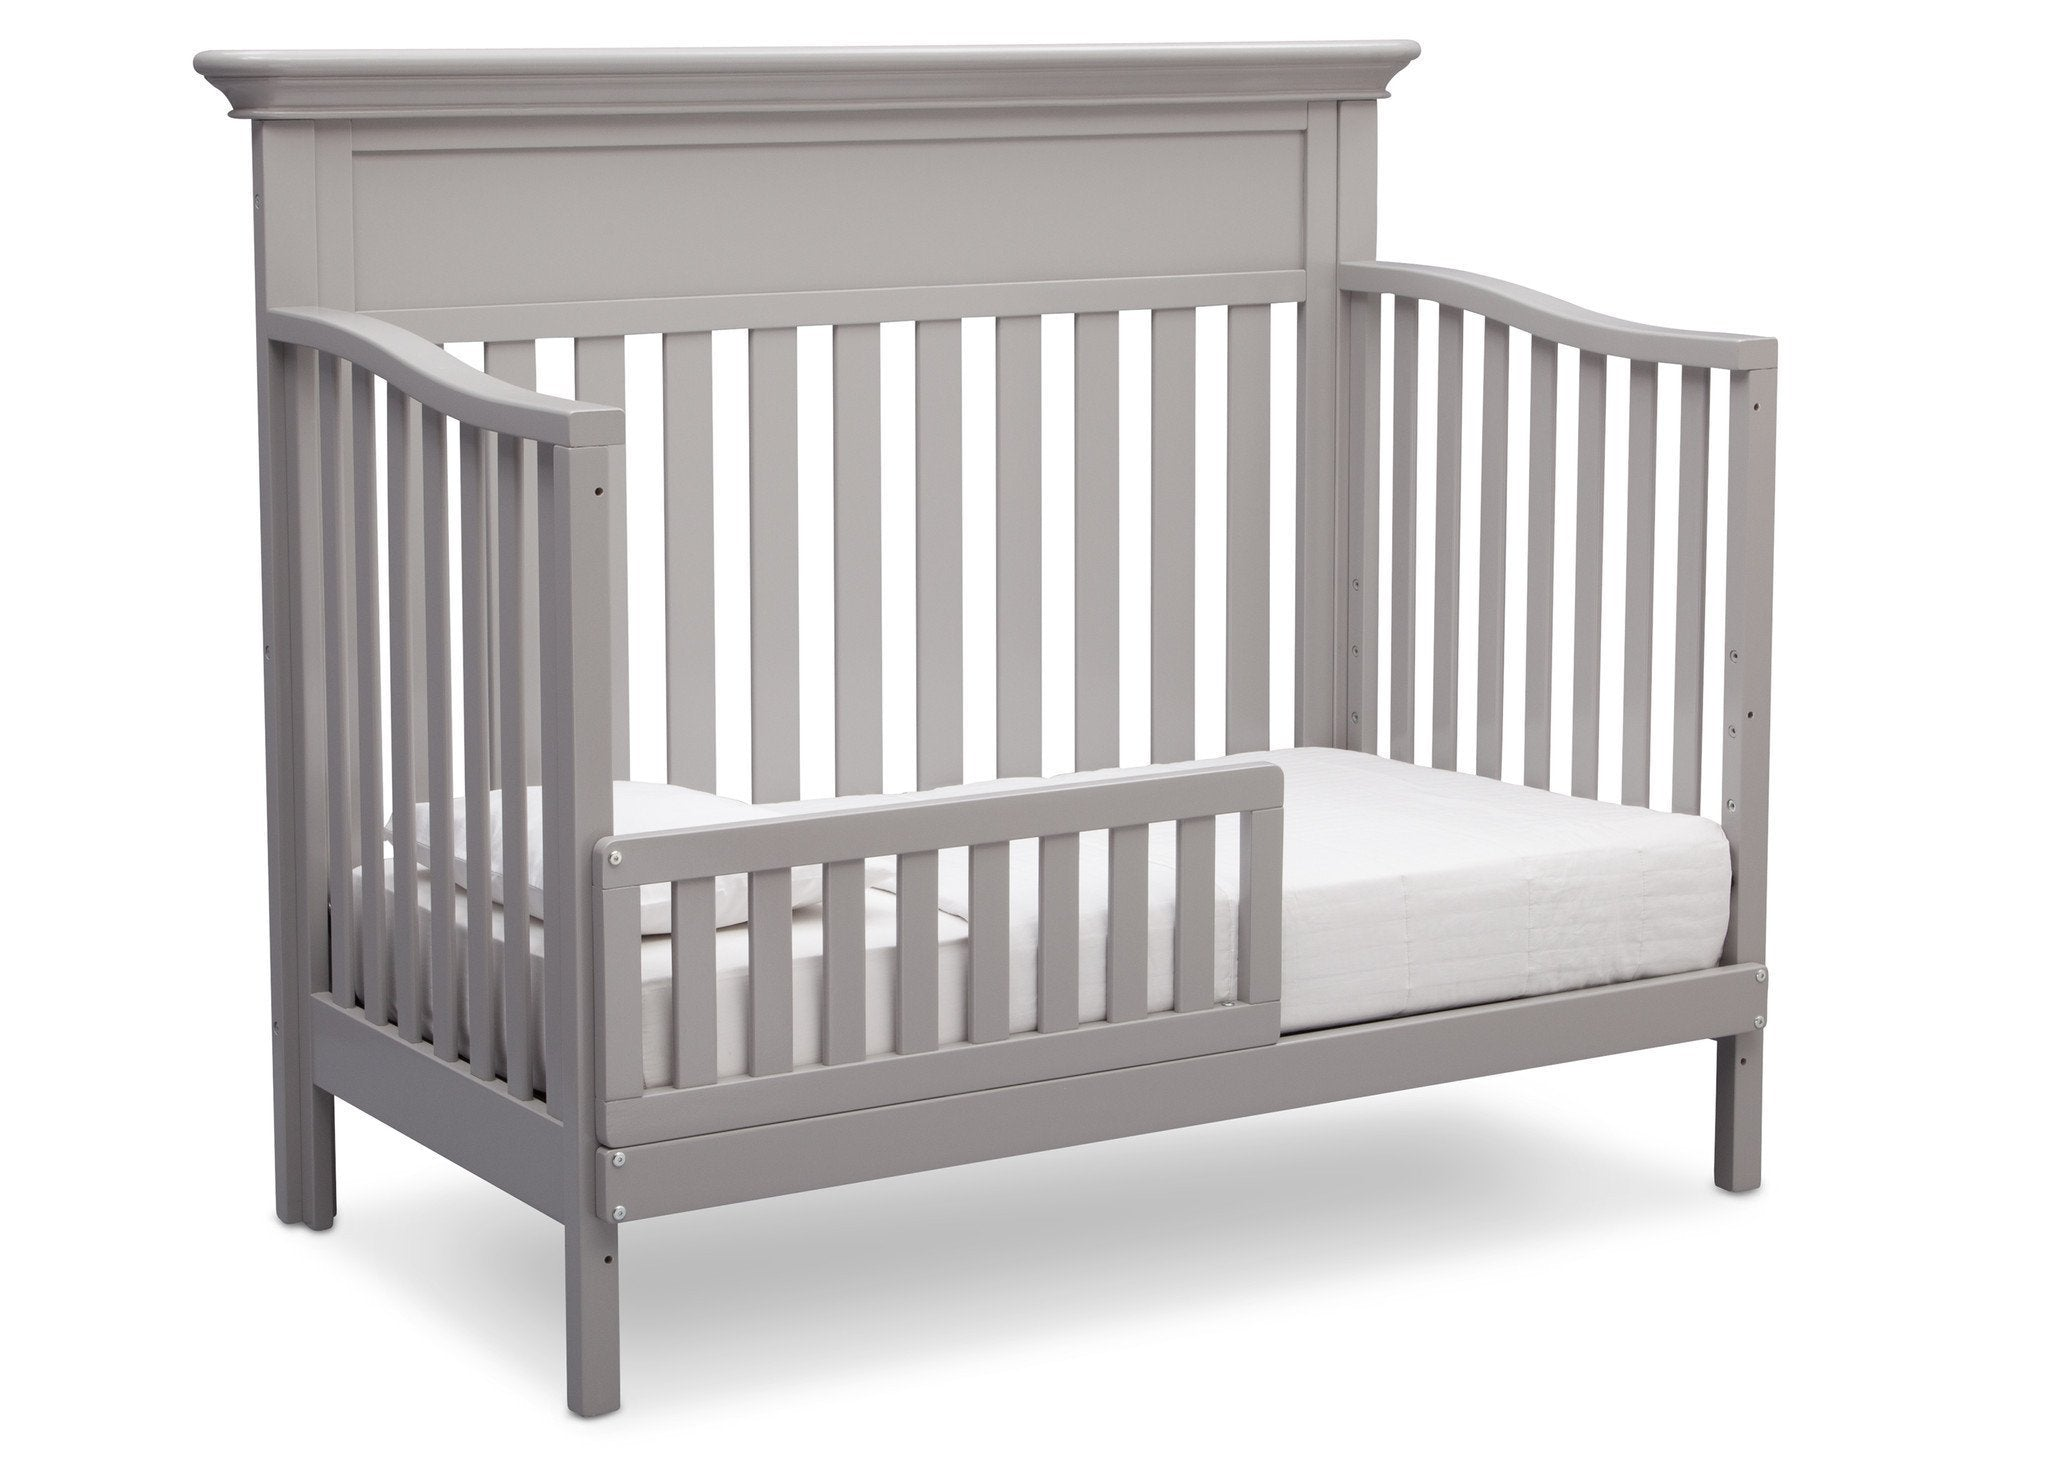 Serta Grey (026) Fernwood 4-in-1 Crib, Side View with Toddler Bed Conversion b5b